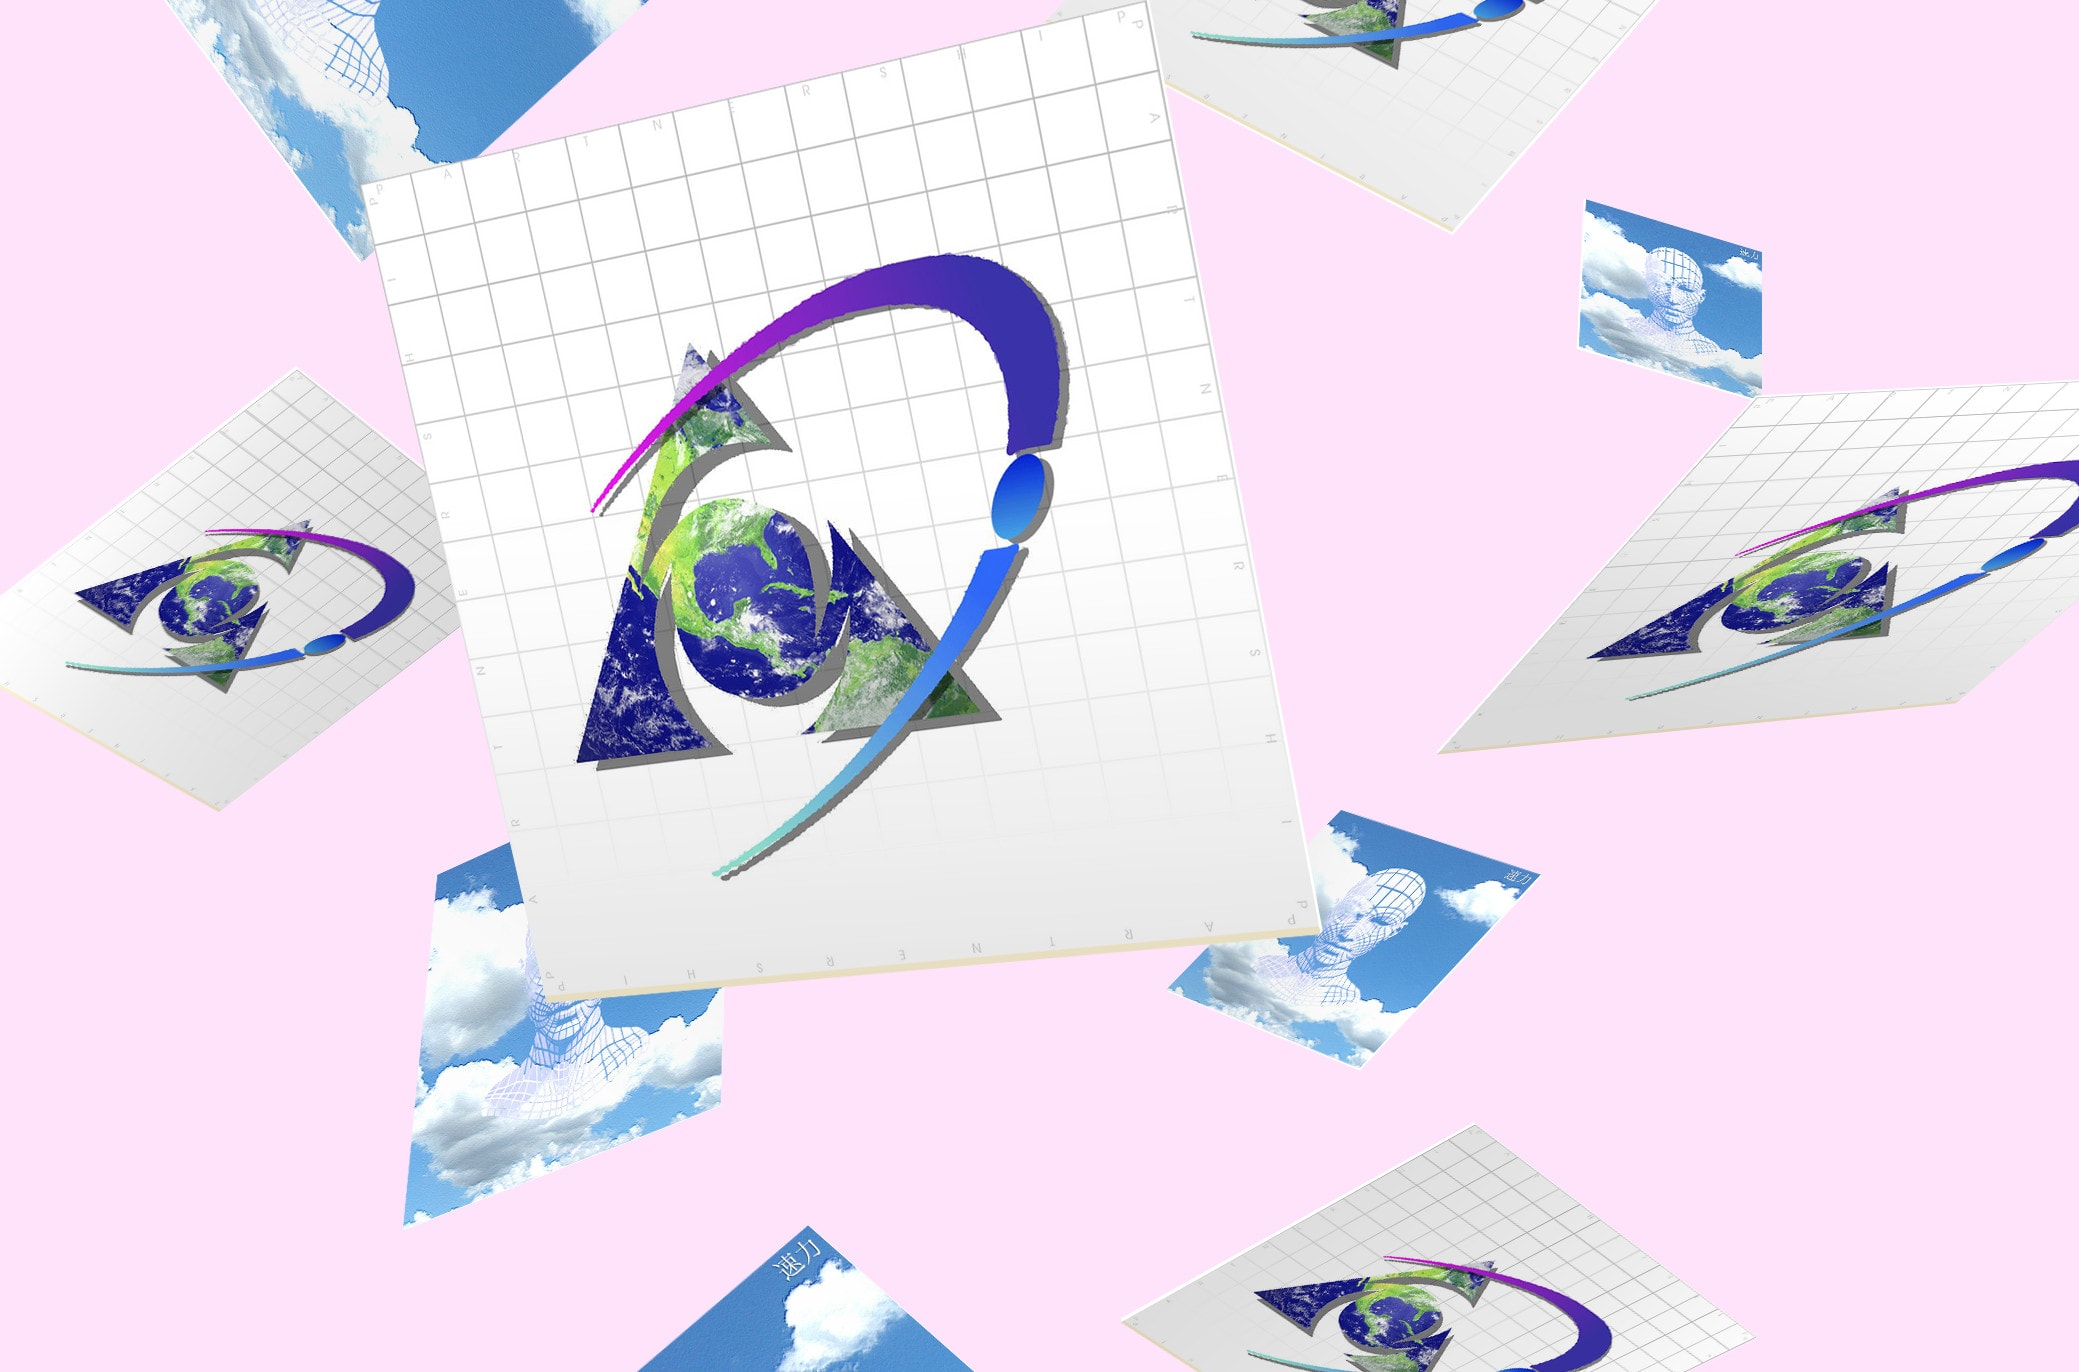 20 Best Vaporwave Album Covers of 2015 - Hipsthetic